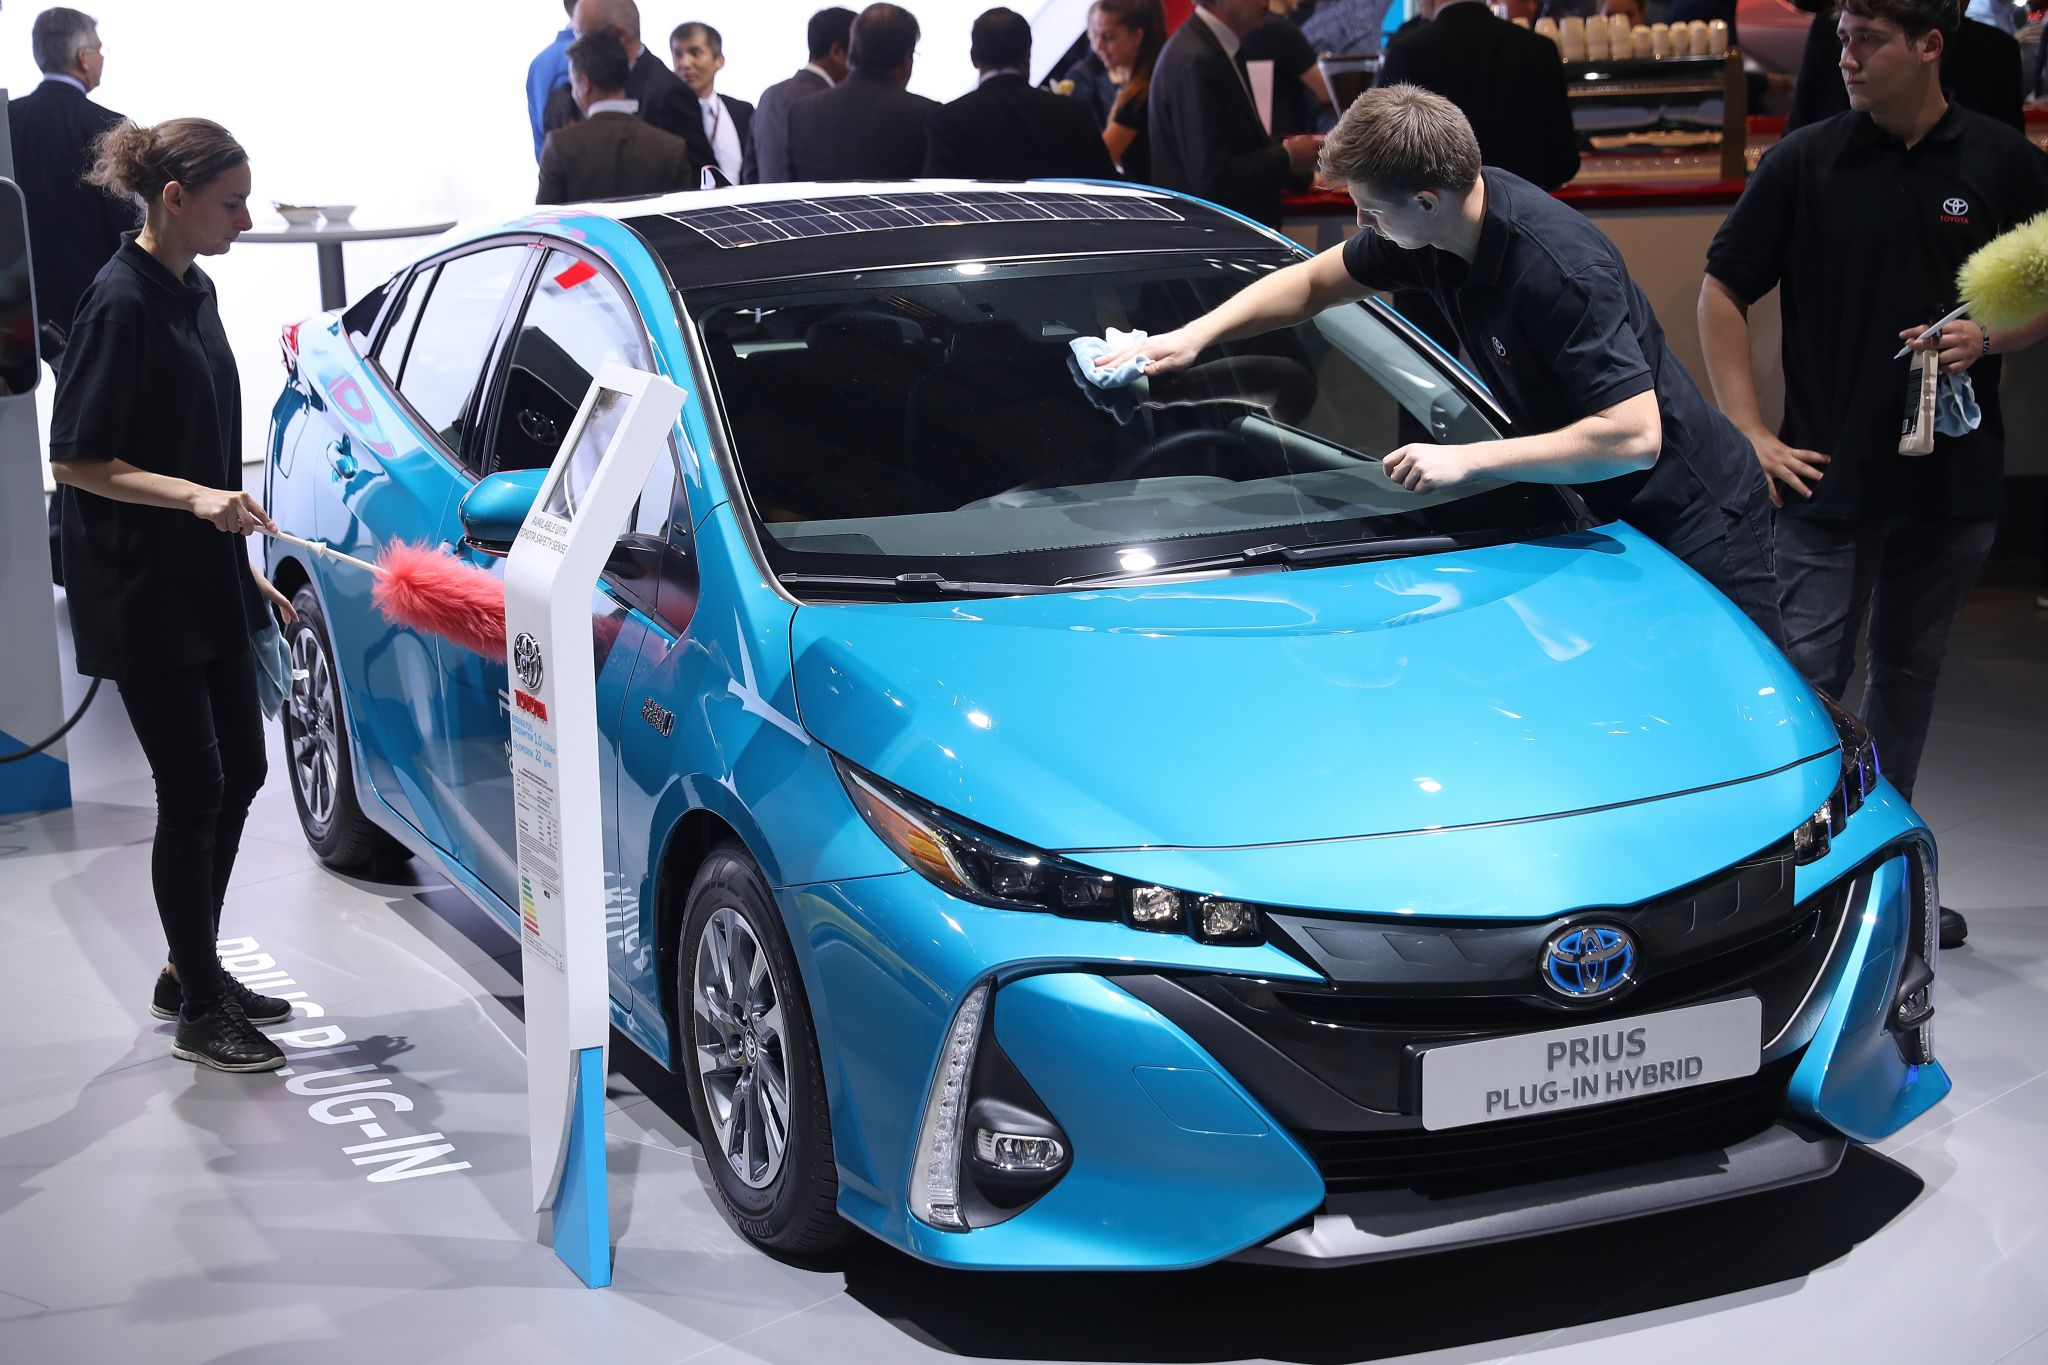 Say goodbye to the Prius V because Toyota just killed it